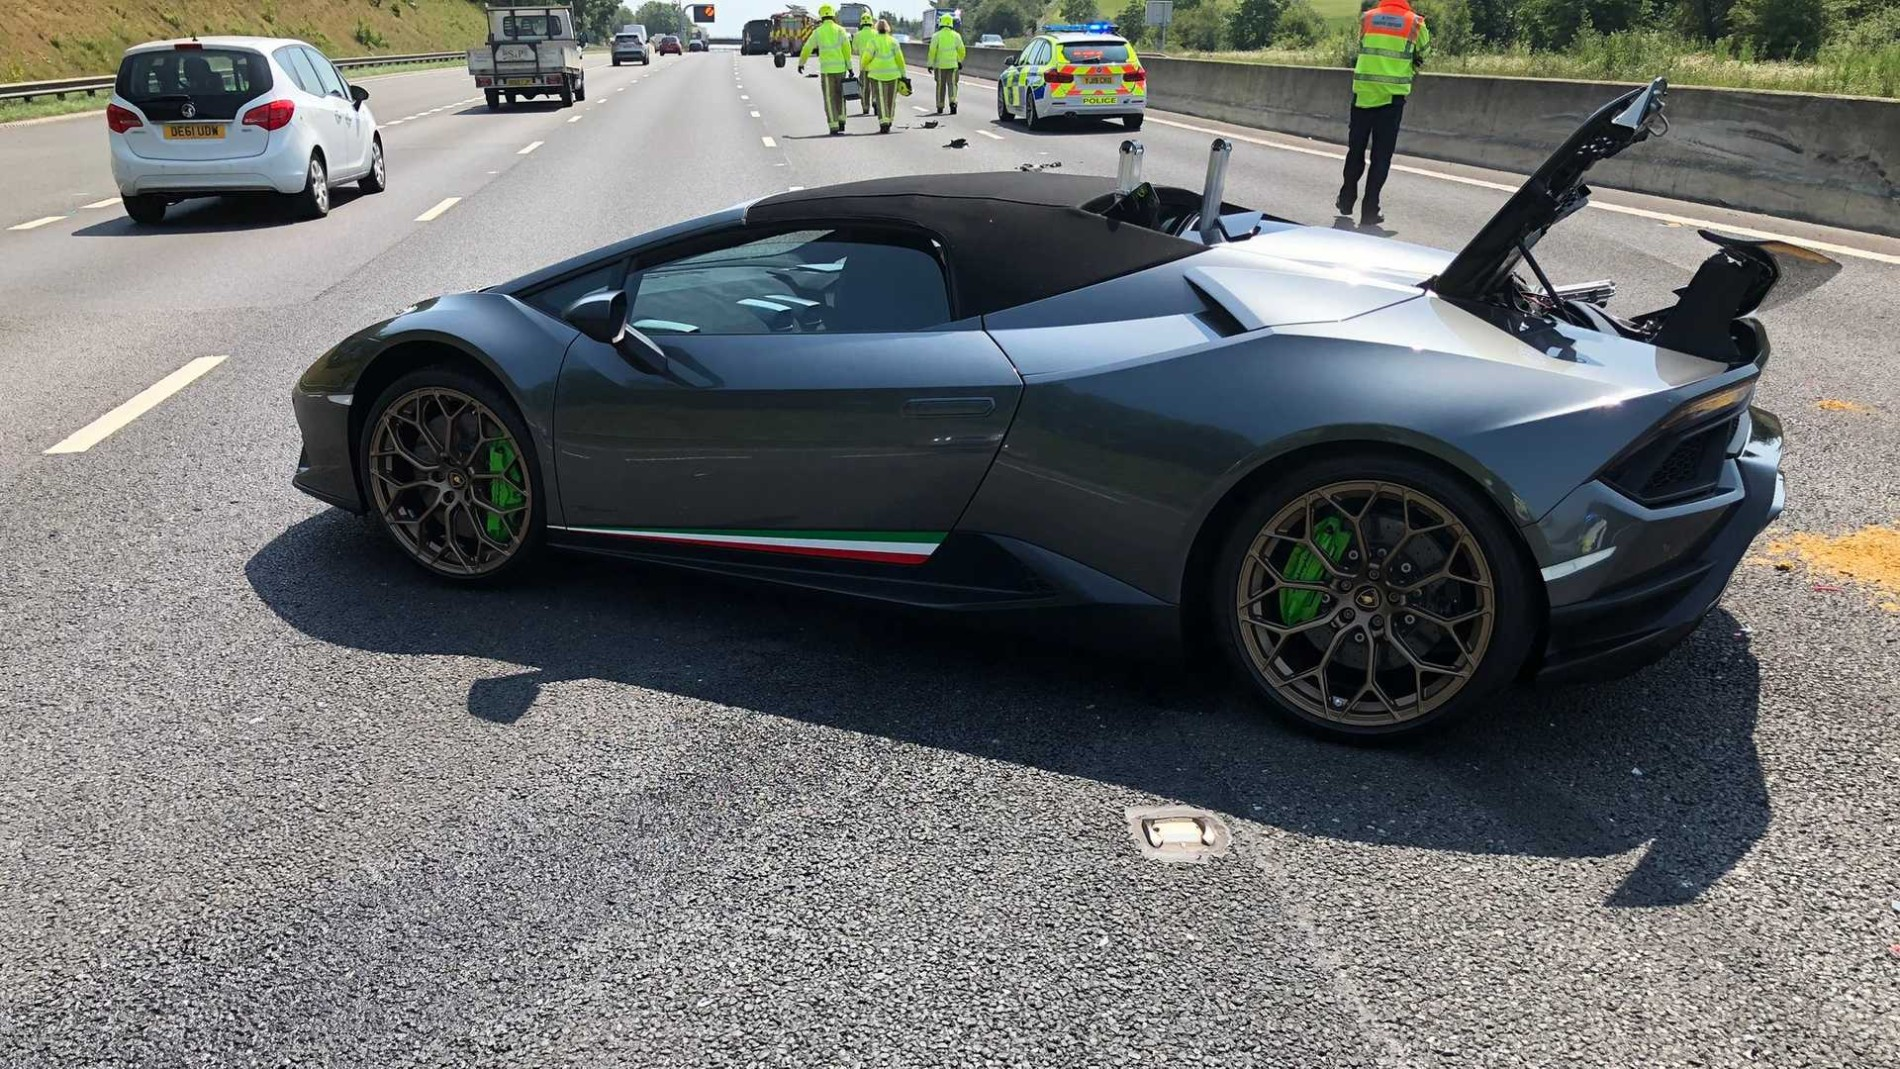 Accident Huracan Performante Spyder - Accident Huracan Performante Spyder